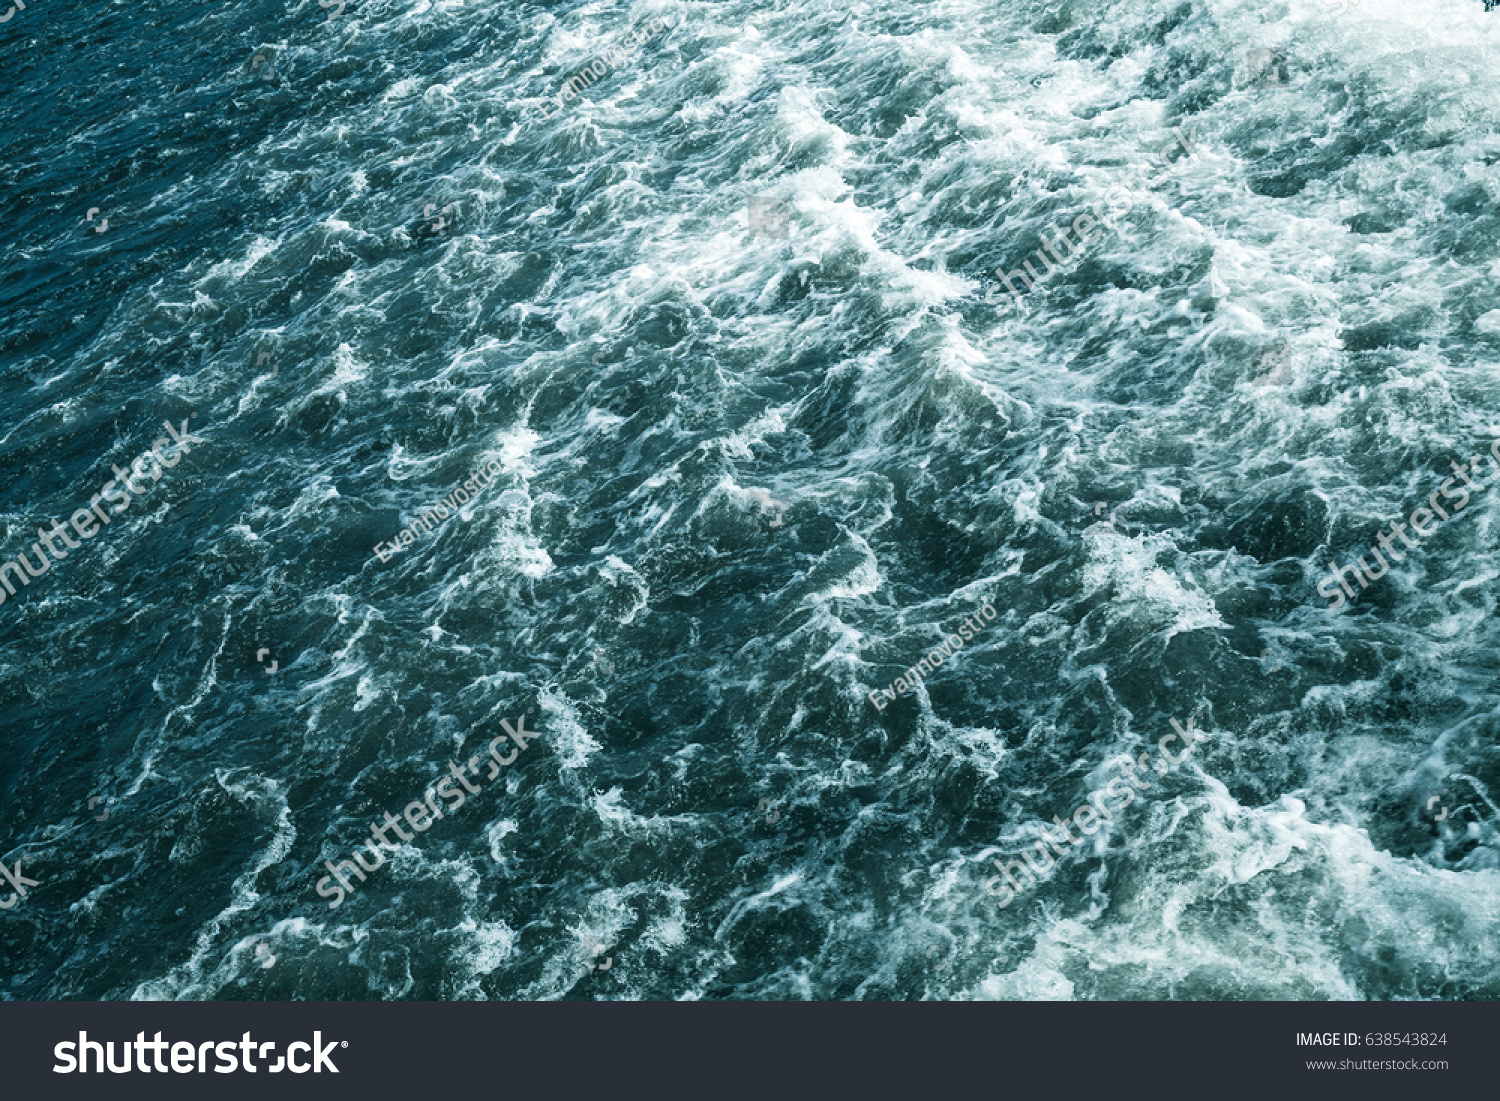 Stormy sea, deep blue water surface with foam and waves, natural background photo #638543824